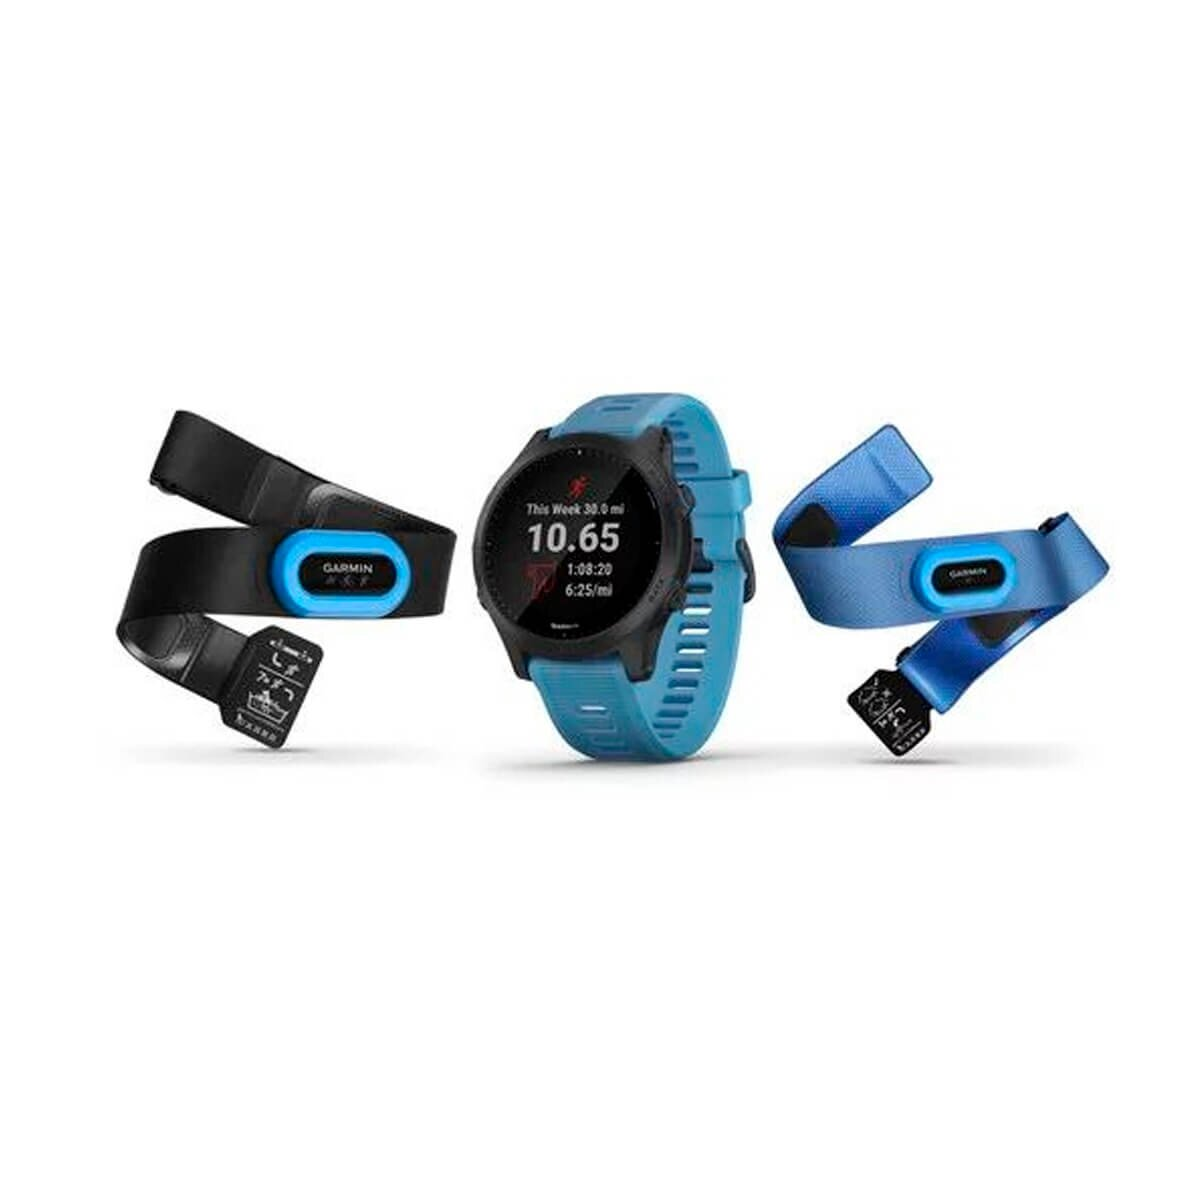 Cпортивные часы GARMIN Forerunner 945 Tri-bundle HRM with Blue and Black Silicone Bands (010-02063-11/10)